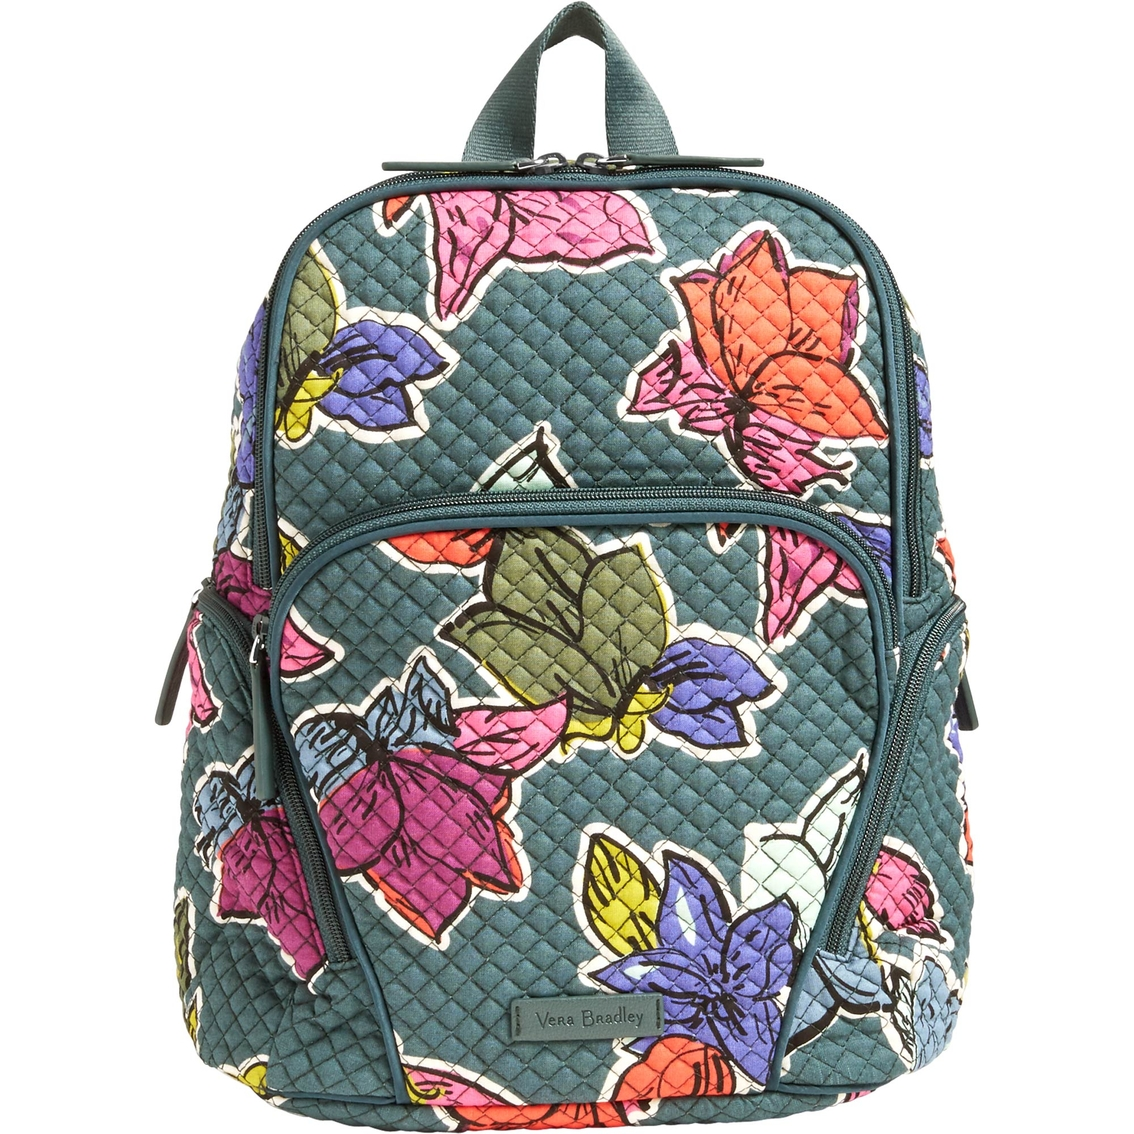 c34d13fe1 Vera Bradley Hadley Backpack, Falling Flowers | Shop By Pattern ...